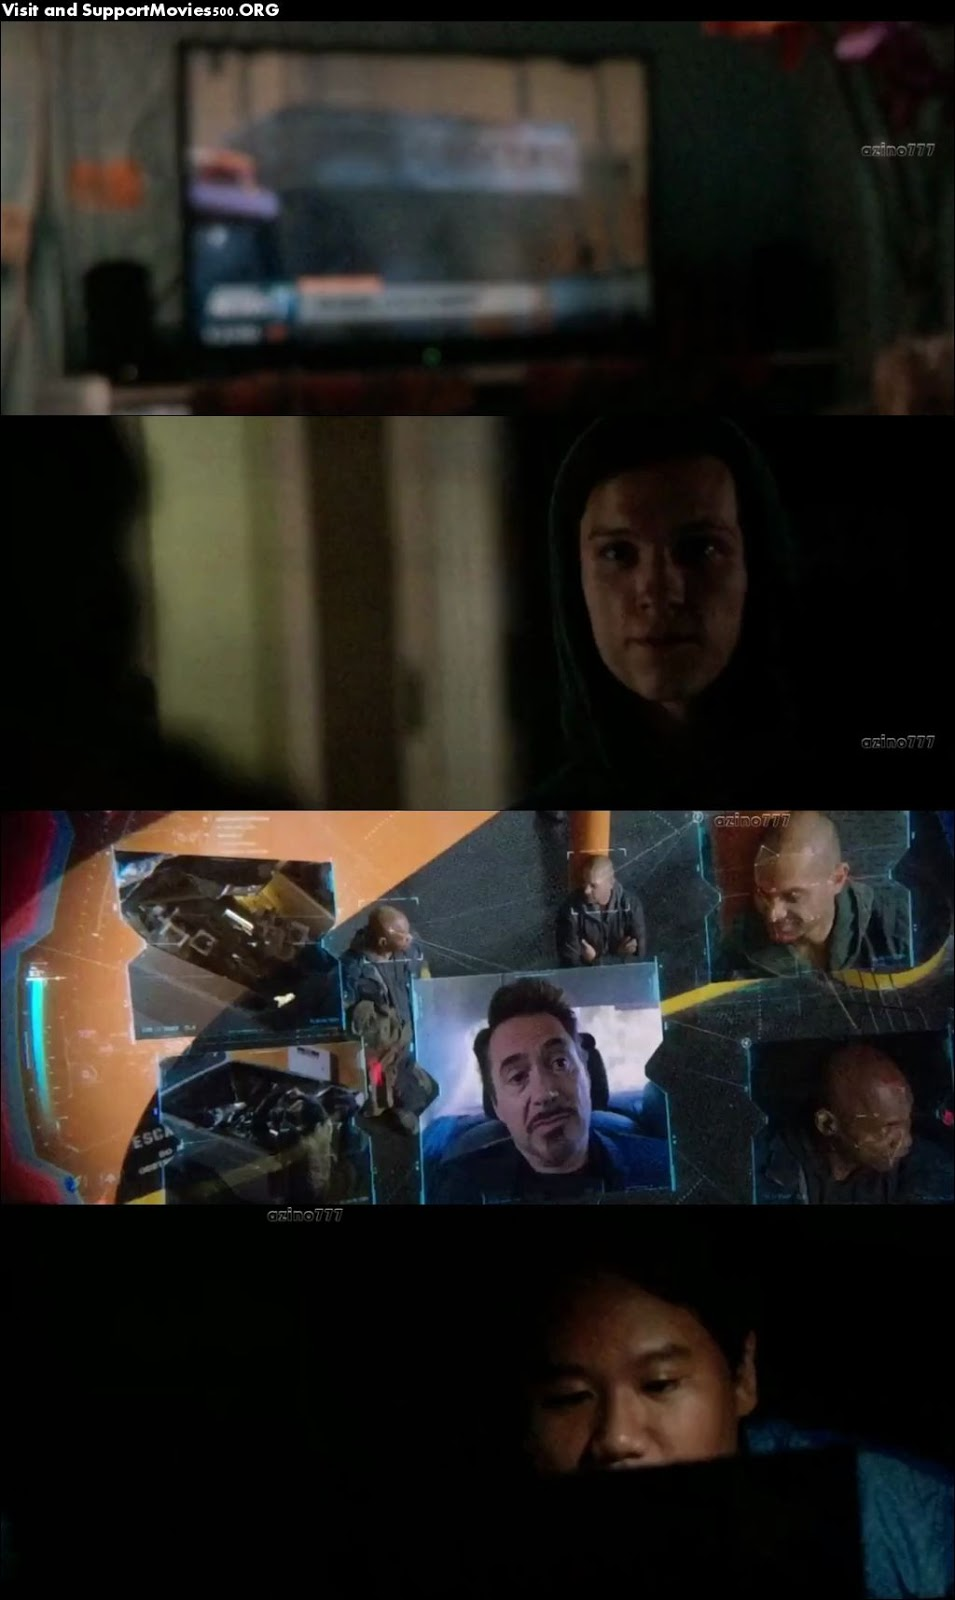 Spider-Man Homecoming 2017 English Movie Download HD at xcharge.net